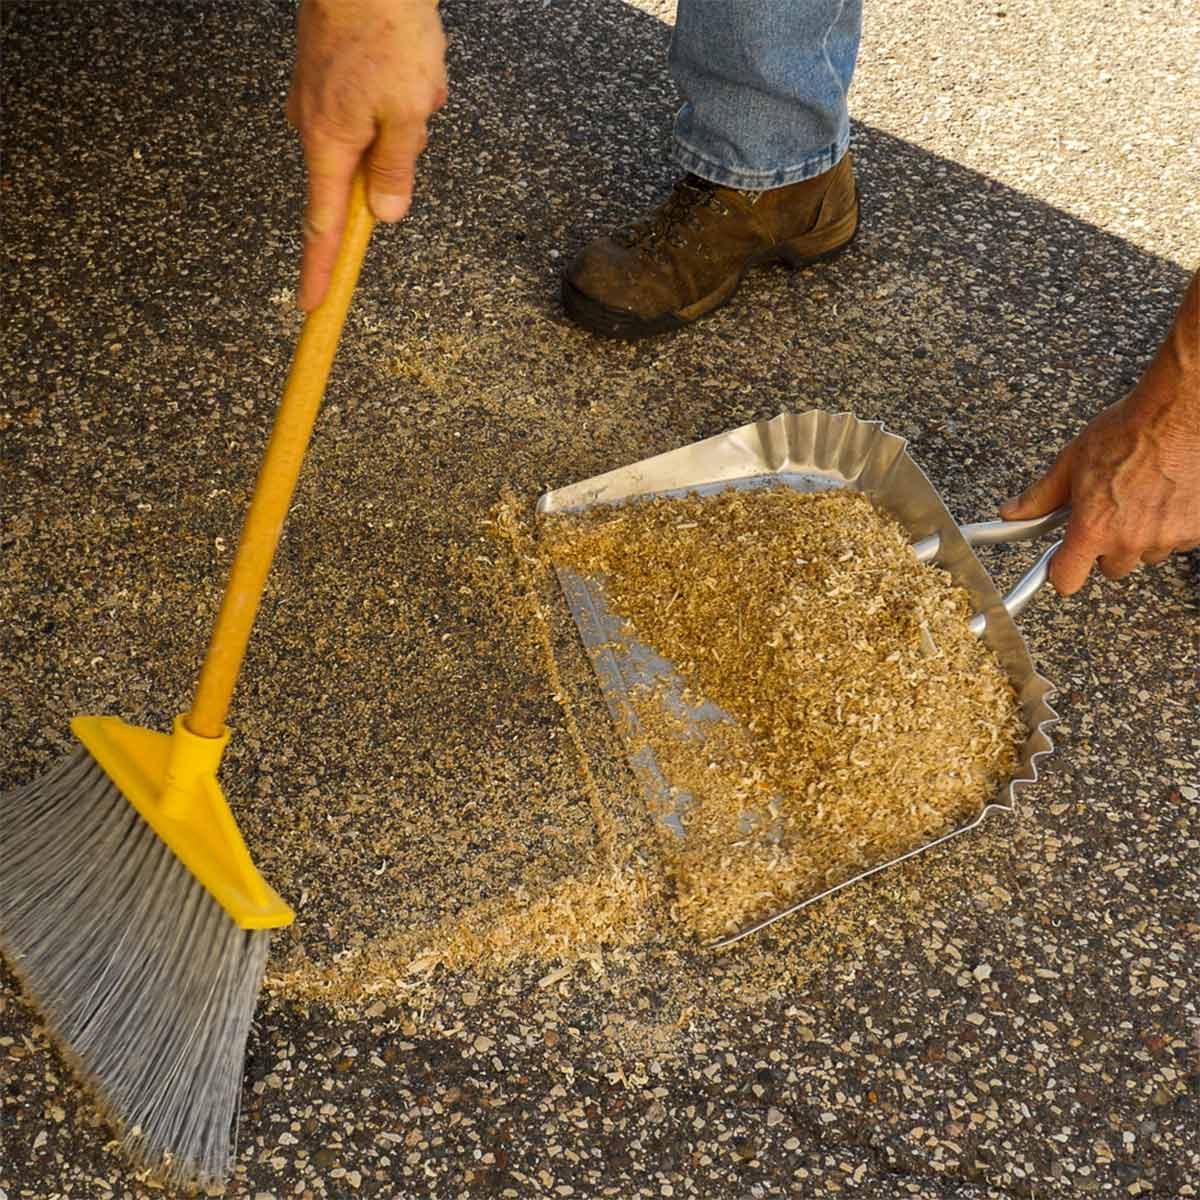 sweeping up oil-soaked sawdust